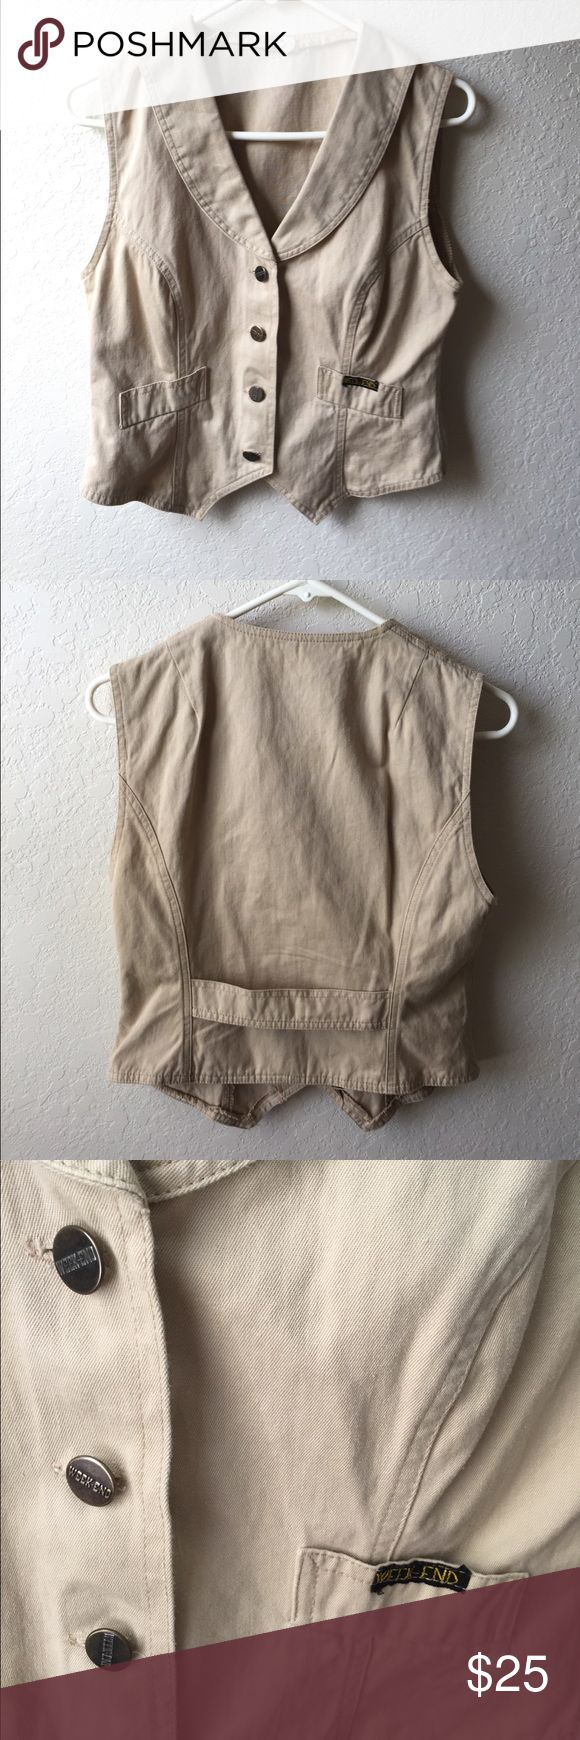 Weekend vintage denim khaki beige vest Weekend vintage denim beige vest, bought in Europe, size 44, will fit us S. Interesting vintage piece, will look great with white shirt or top. Good condition. No trades! Bundle to save! Vintage Jackets & Coats Vests